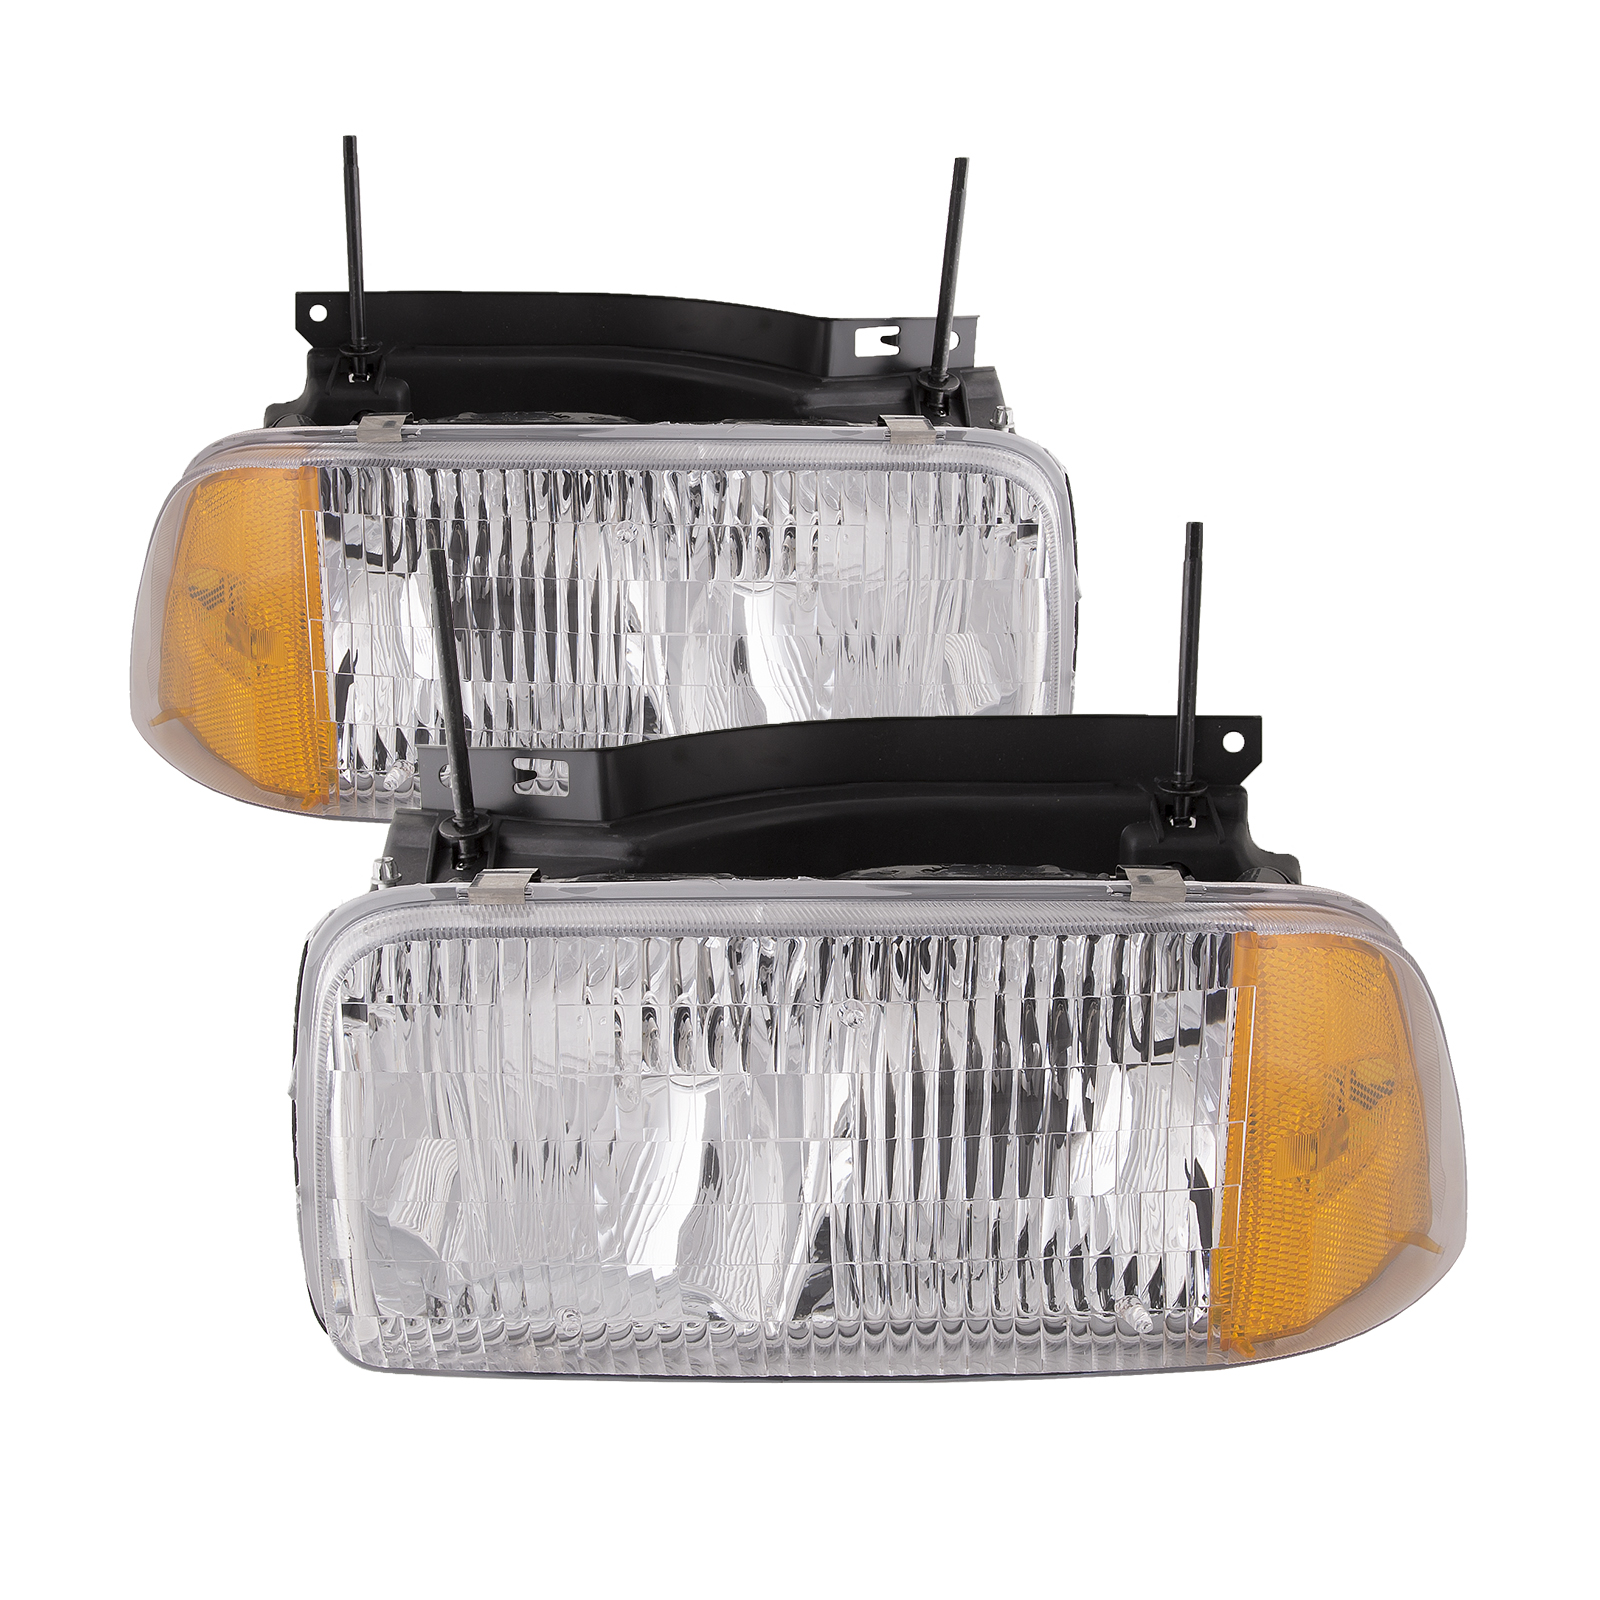 Details About Headlights Set Left Right Pair Fits 94 97 GMC Sonoma 96 Oldsmobile Bravada